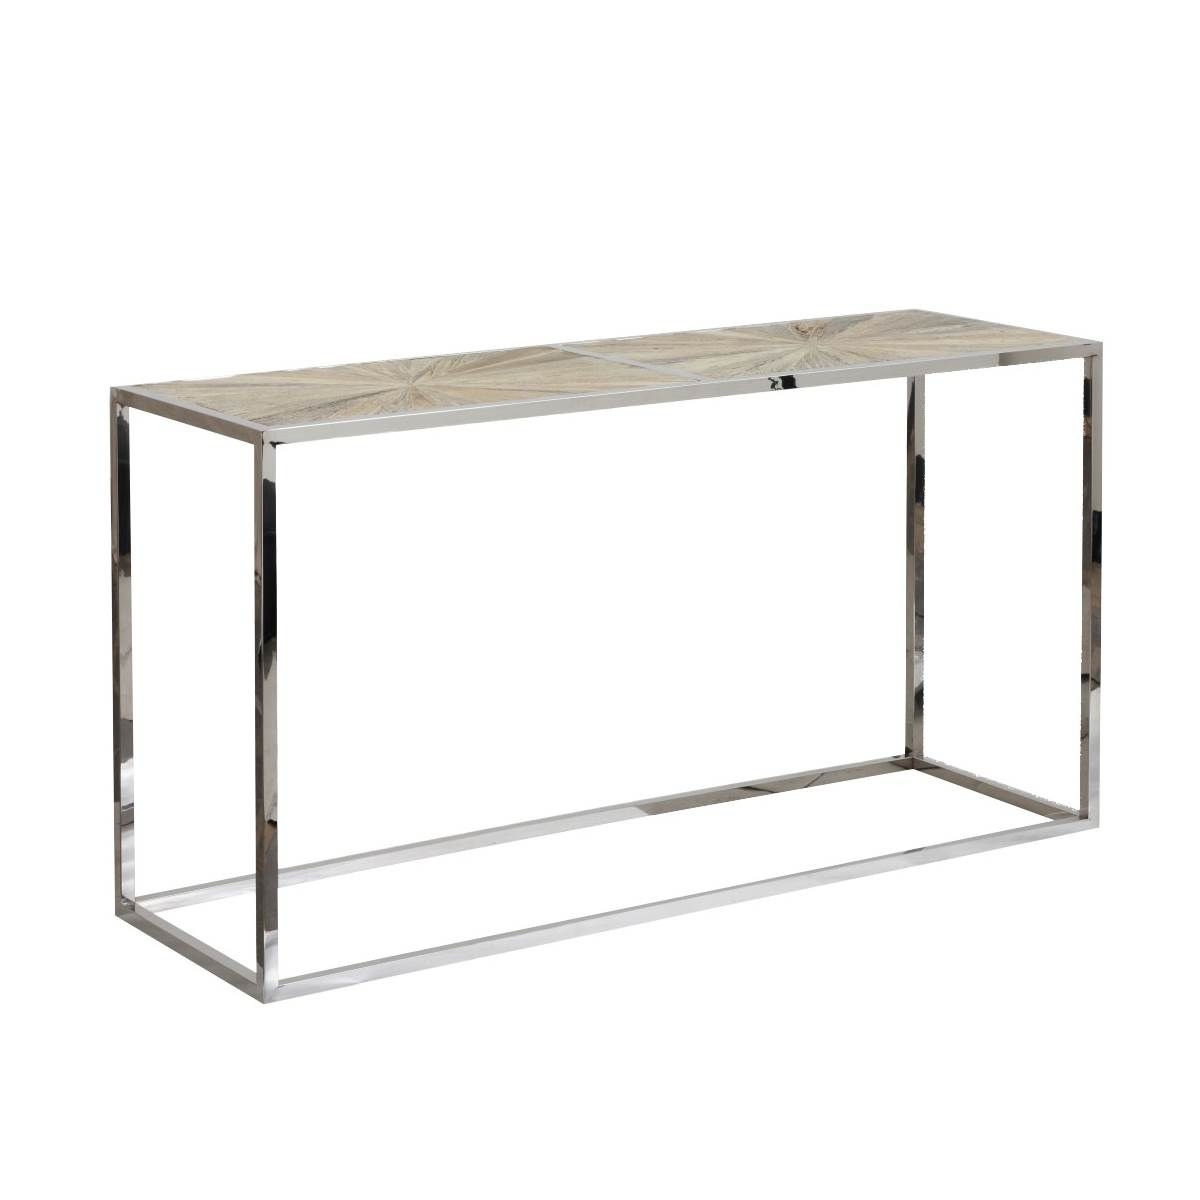 Parquet Console Table | Marshall | Pinterest Inside Parsons Grey Solid Surface Top & Dark Steel Base 48X16 Console Tables (Photo 15 of 30)